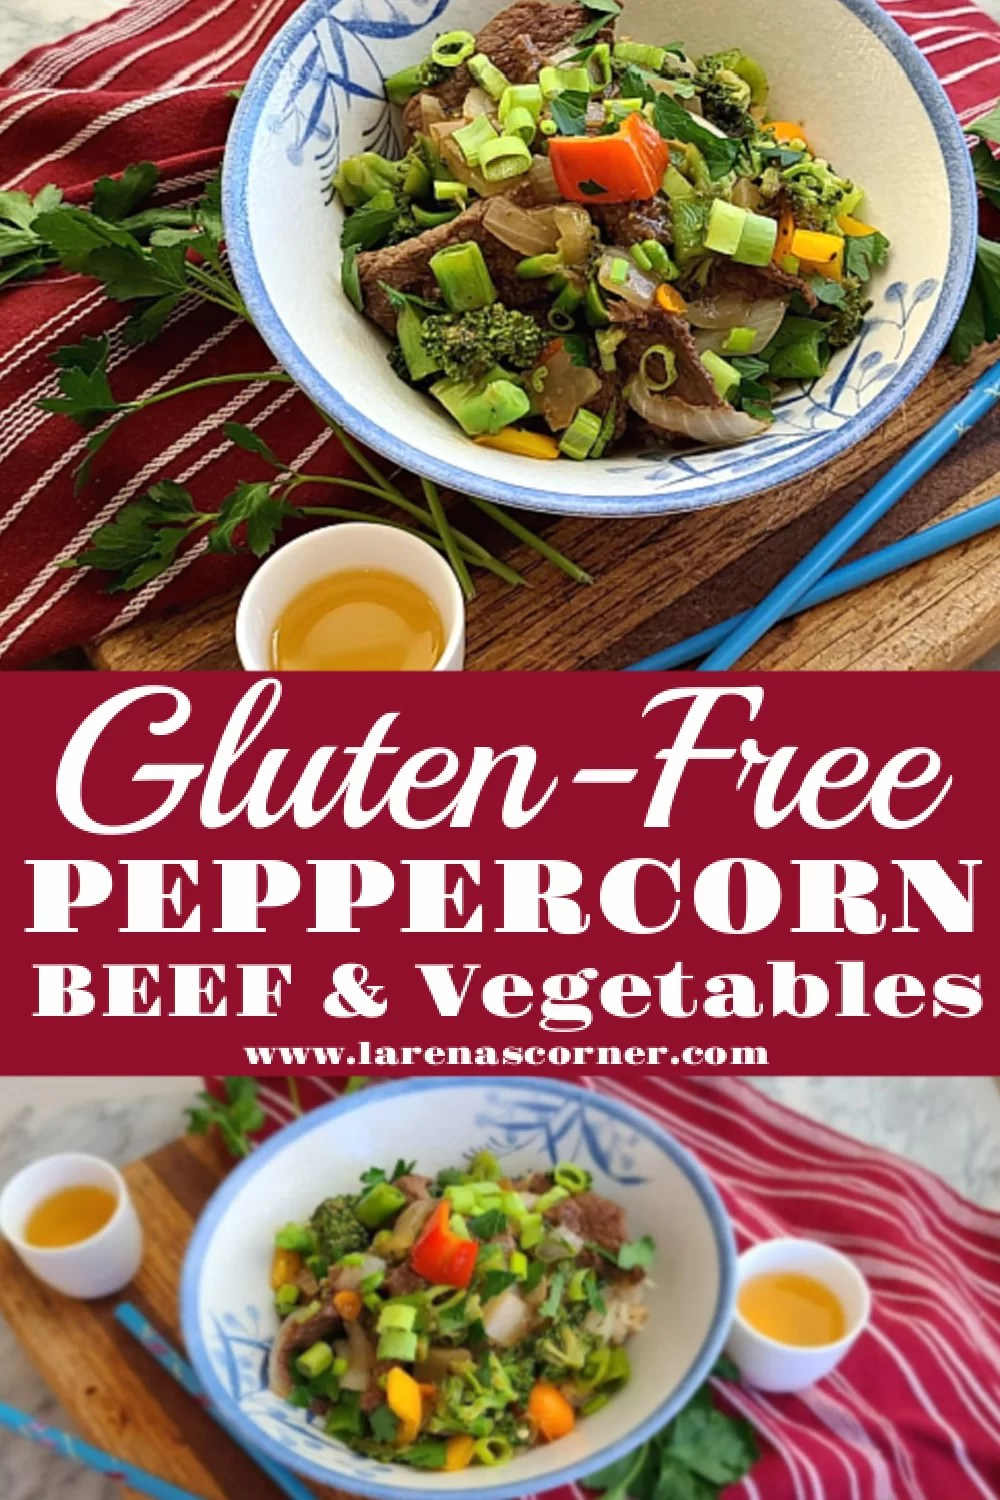 Gluten-Free Peppercorn Beef and Vegetables. Two different pictures of a bowl of Peppercorn Beef and Vegetables